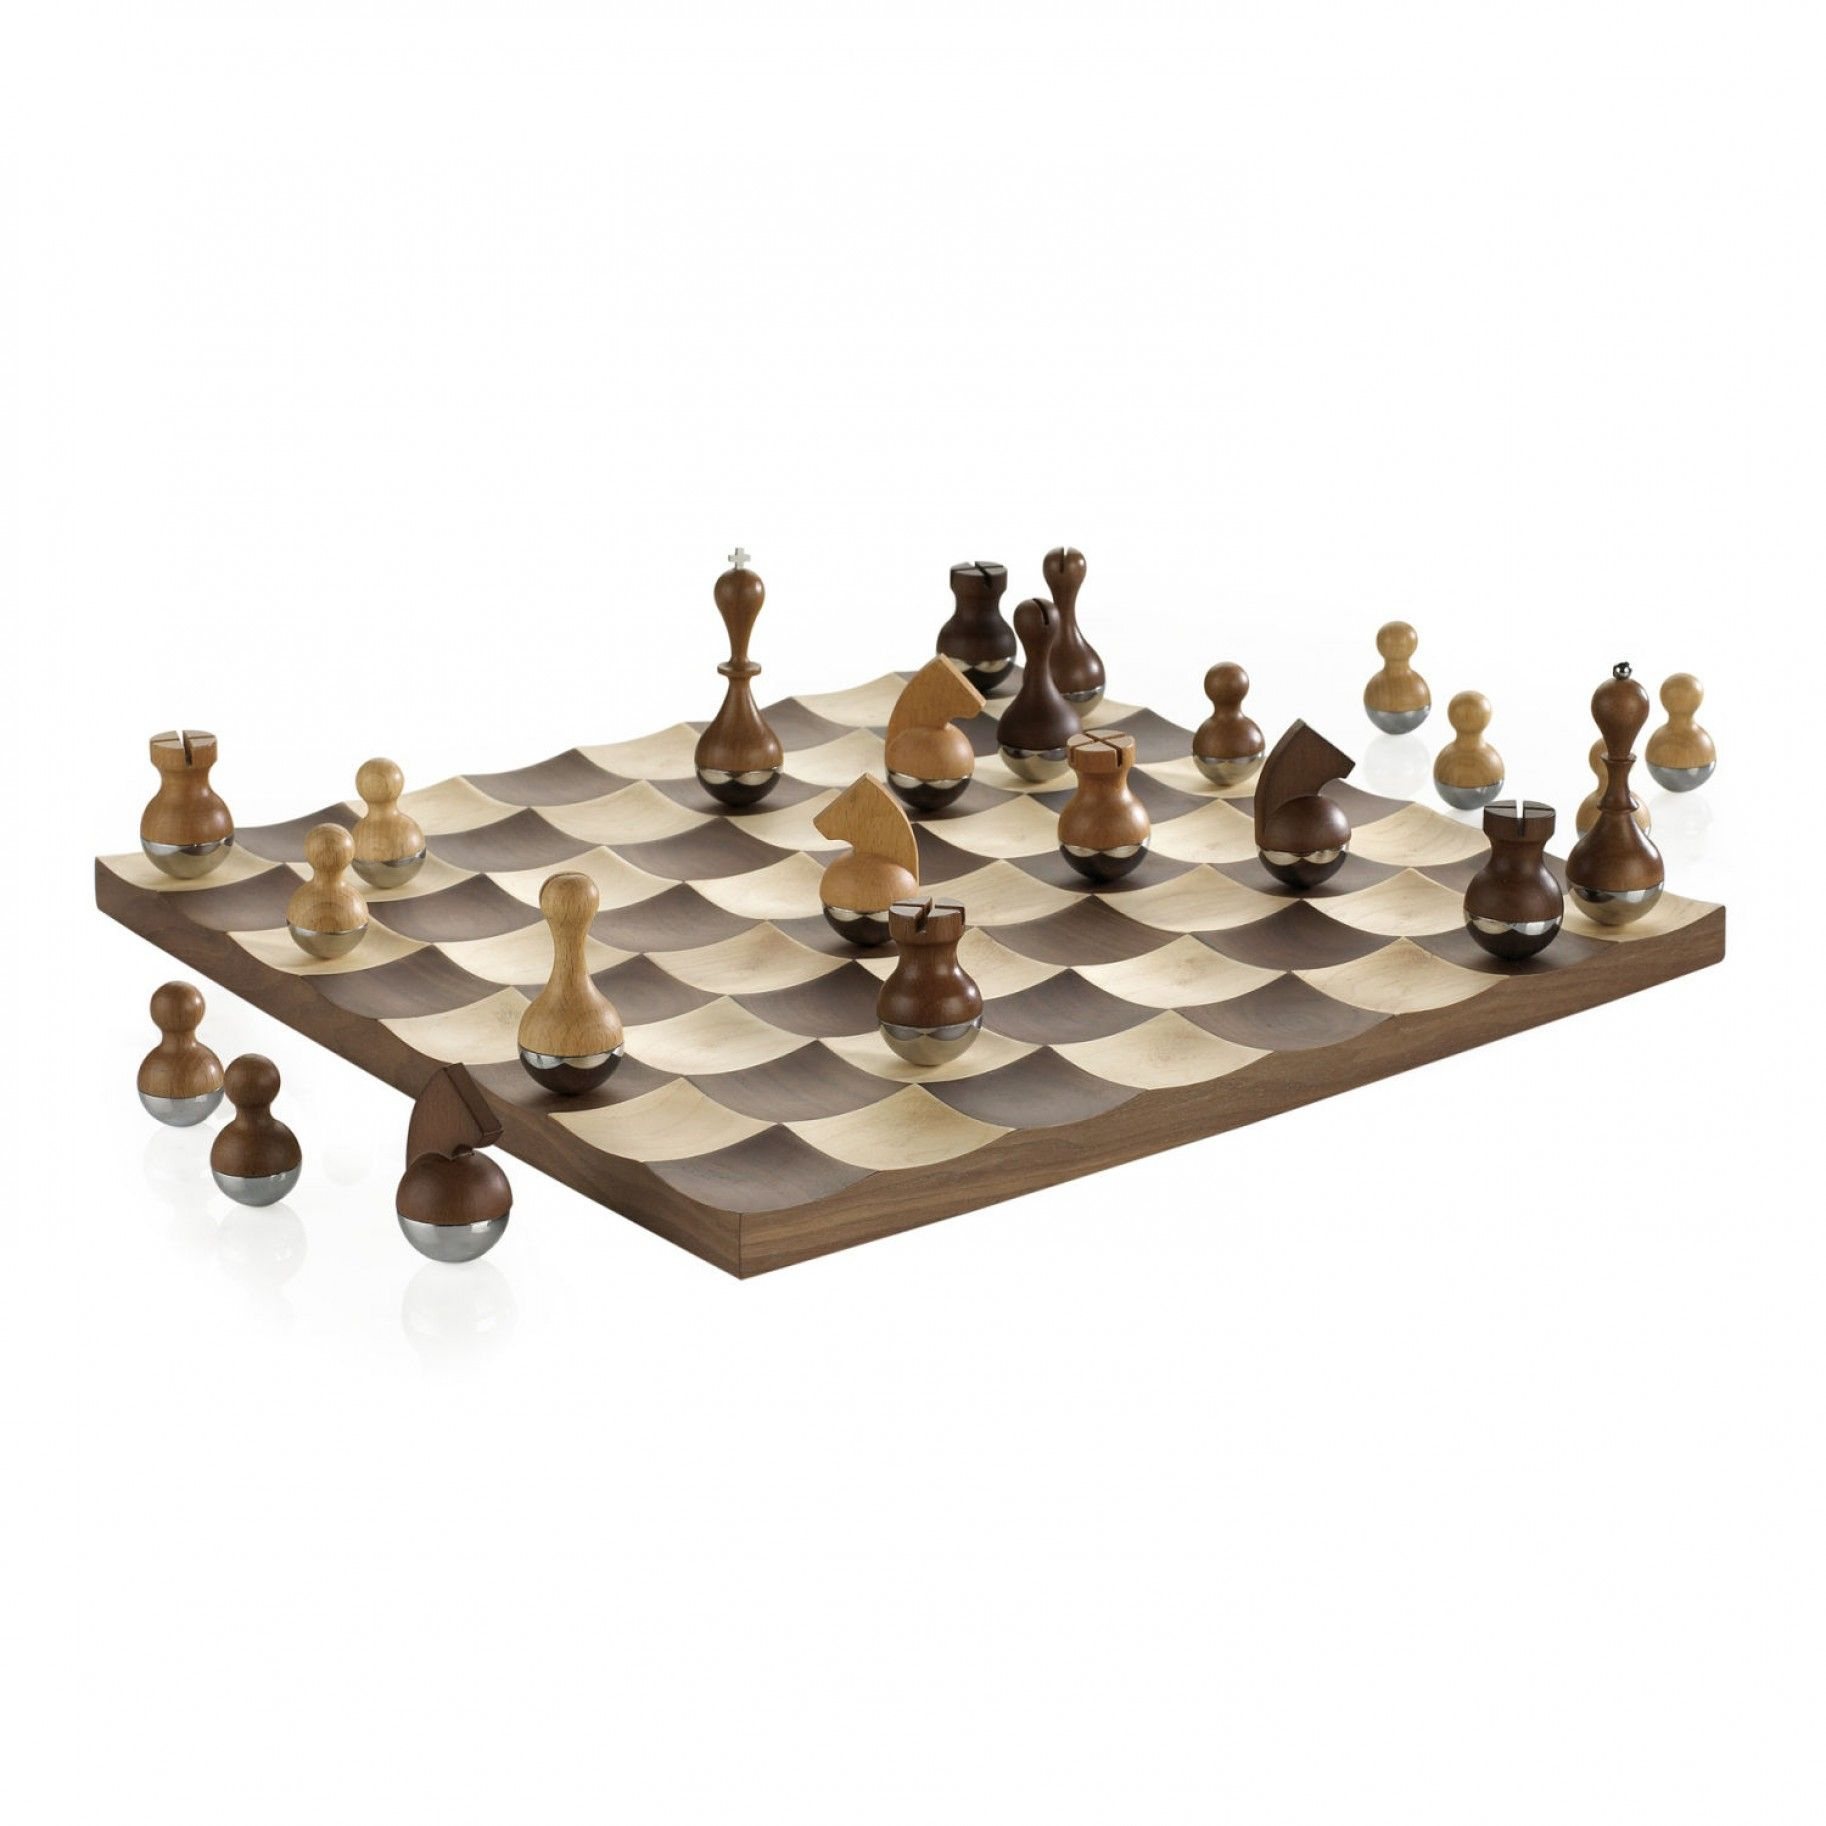 Attractive The Wobble Chess Set From Umbra Is At Once Playful And Challending. I Love  It